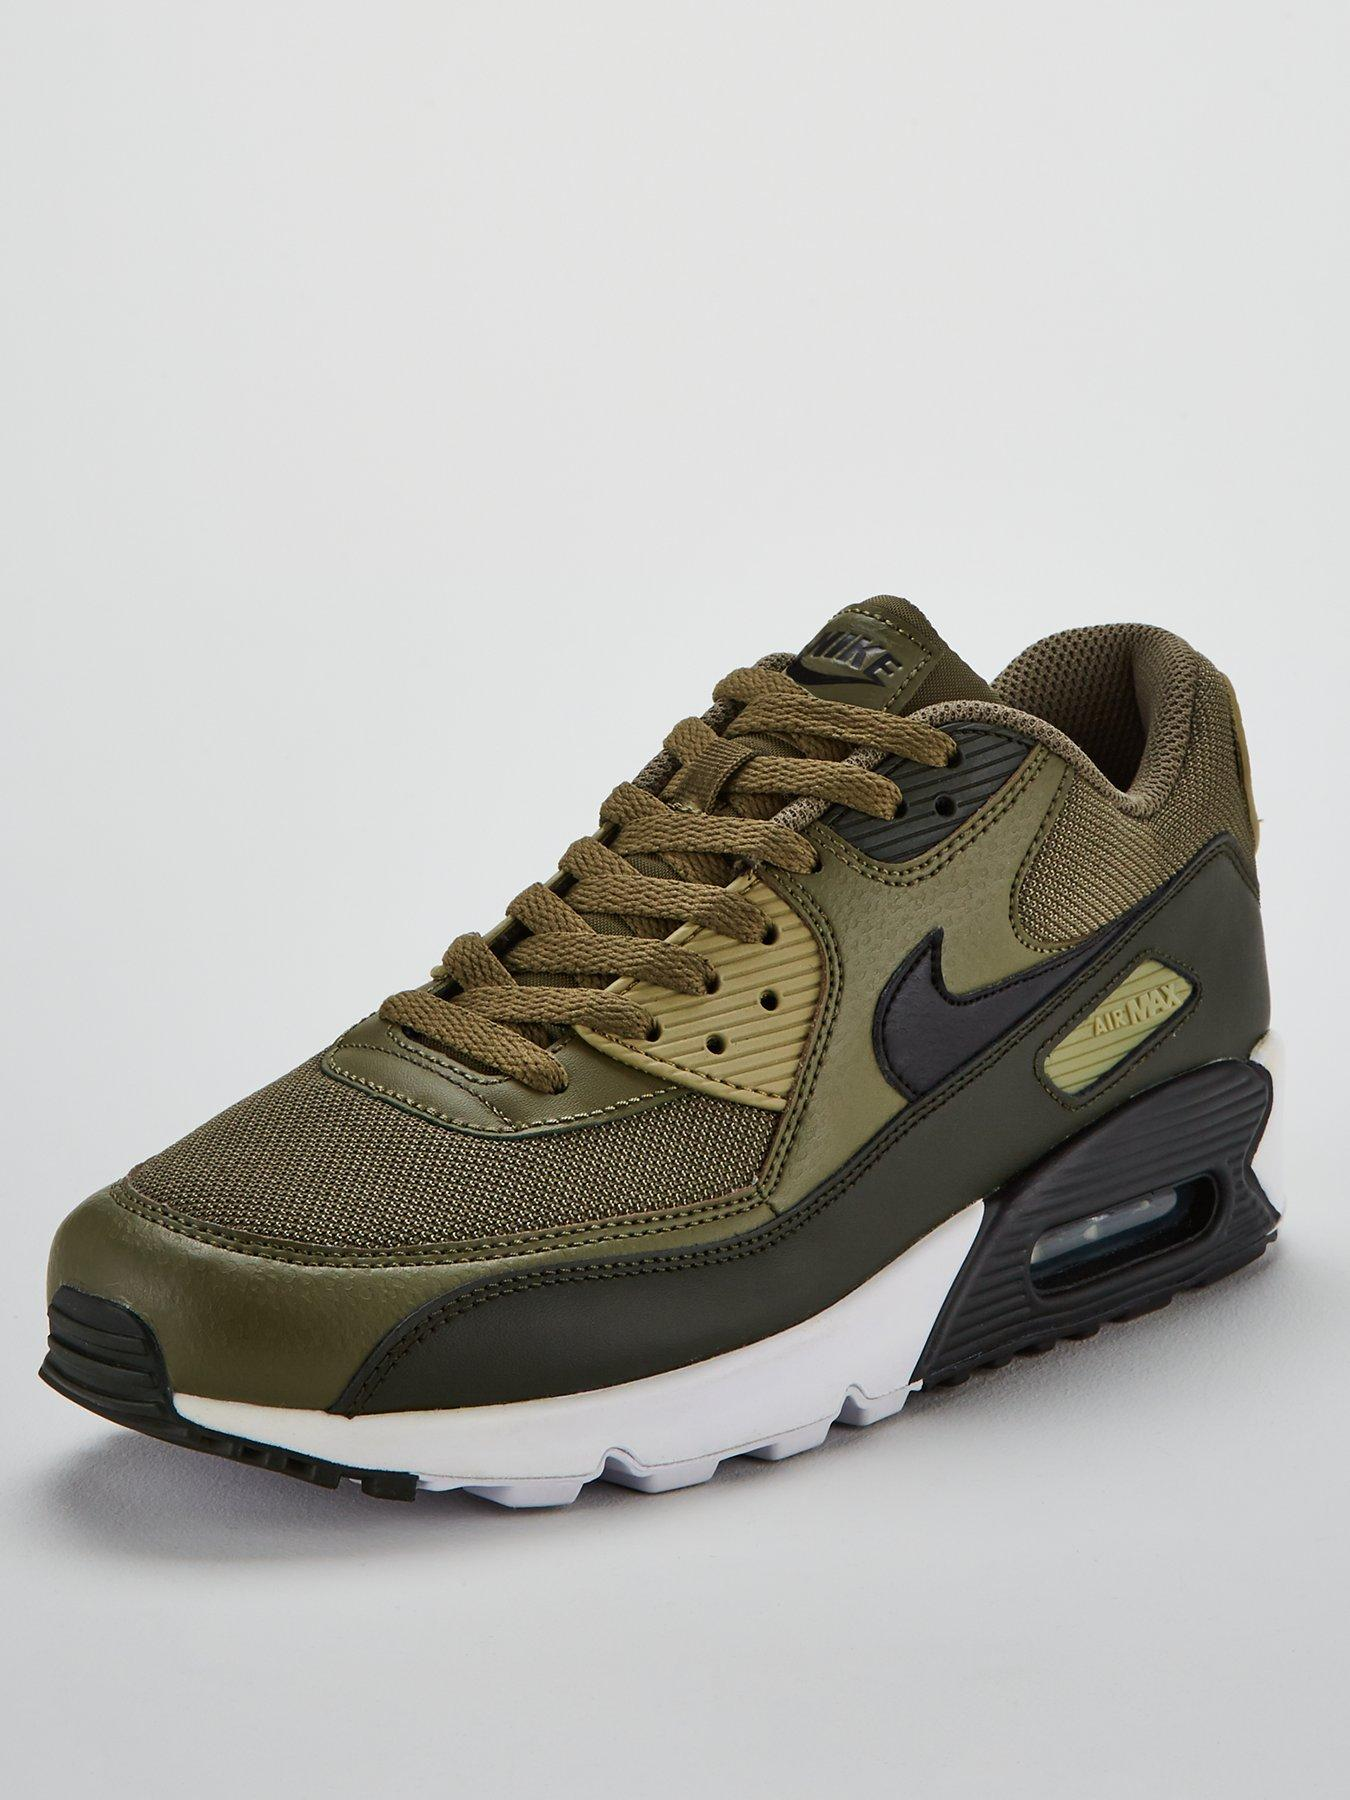 Nike Air Max 90 Essential Herren Günstig not in